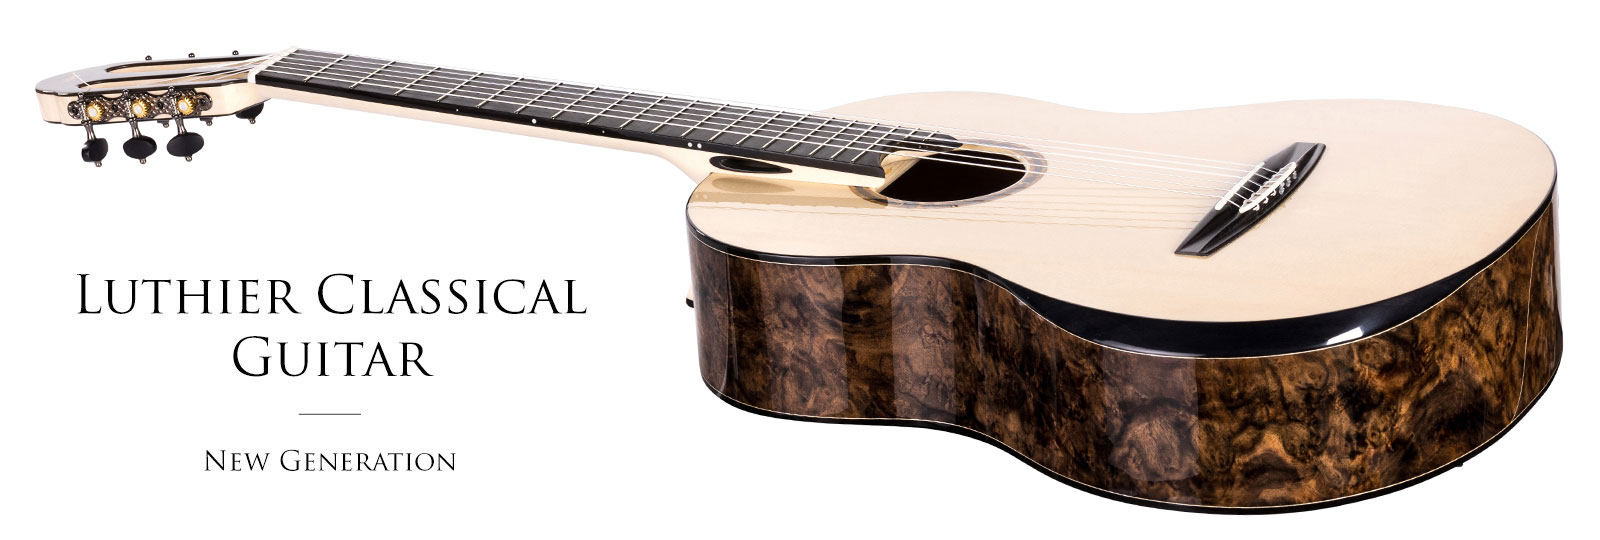 luthier-classical-guitar-the-queen-of-guitars